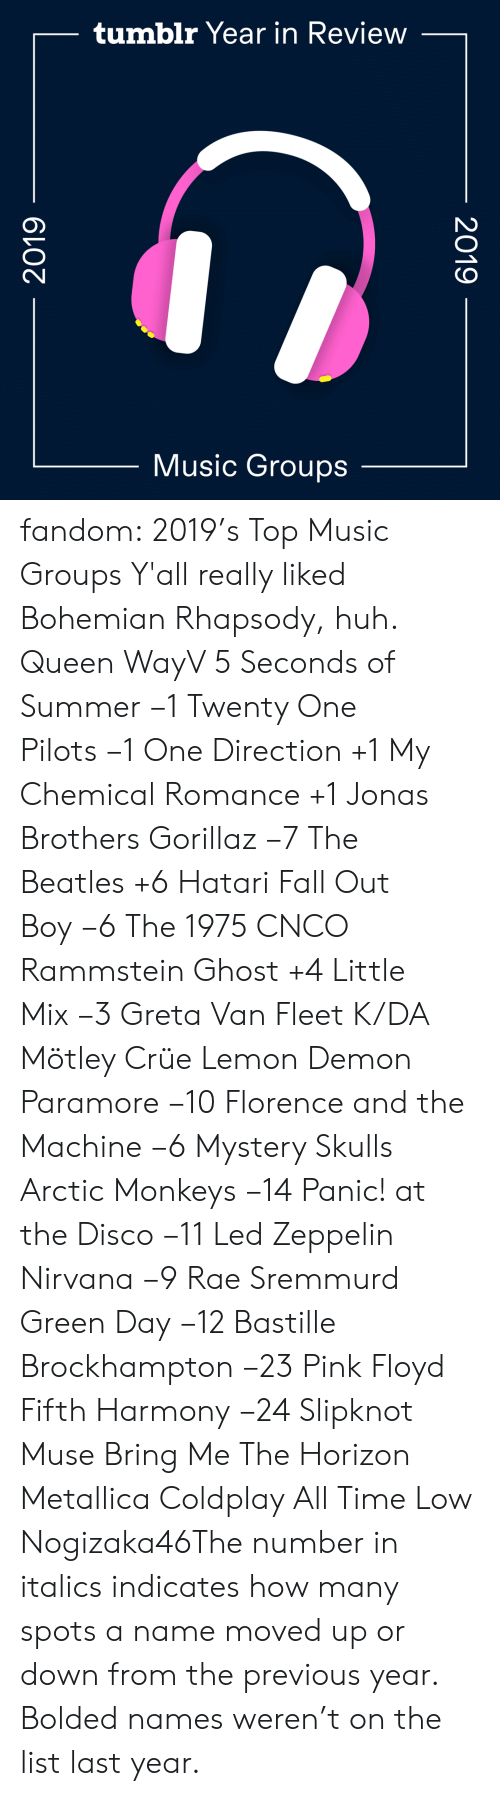 One Direction: tumblr Year in Review  Music Groups  2019  2019 fandom:  2019's Top Music Groups  Y'all really liked Bohemian Rhapsody, huh.  Queen  WayV  5 Seconds of Summer −1  Twenty One Pilots −1  One Direction +1  My Chemical Romance +1  Jonas Brothers  Gorillaz −7  The Beatles +6  Hatari  Fall Out Boy −6  The 1975  CNCO  Rammstein  Ghost +4  Little Mix −3  Greta Van Fleet  K/DA  Mötley Crüe  Lemon Demon  Paramore −10  Florence and the Machine −6  Mystery Skulls  Arctic Monkeys −14  Panic! at the Disco −11  Led Zeppelin   Nirvana −9  Rae Sremmurd  Green Day −12  Bastille  Brockhampton −23  Pink Floyd  Fifth Harmony −24  Slipknot  Muse  Bring Me The Horizon  Metallica  Coldplay  All Time Low  Nogizaka46The number in italics indicates how many spots a name moved up or down from the previous year. Bolded names weren't on the list last year.